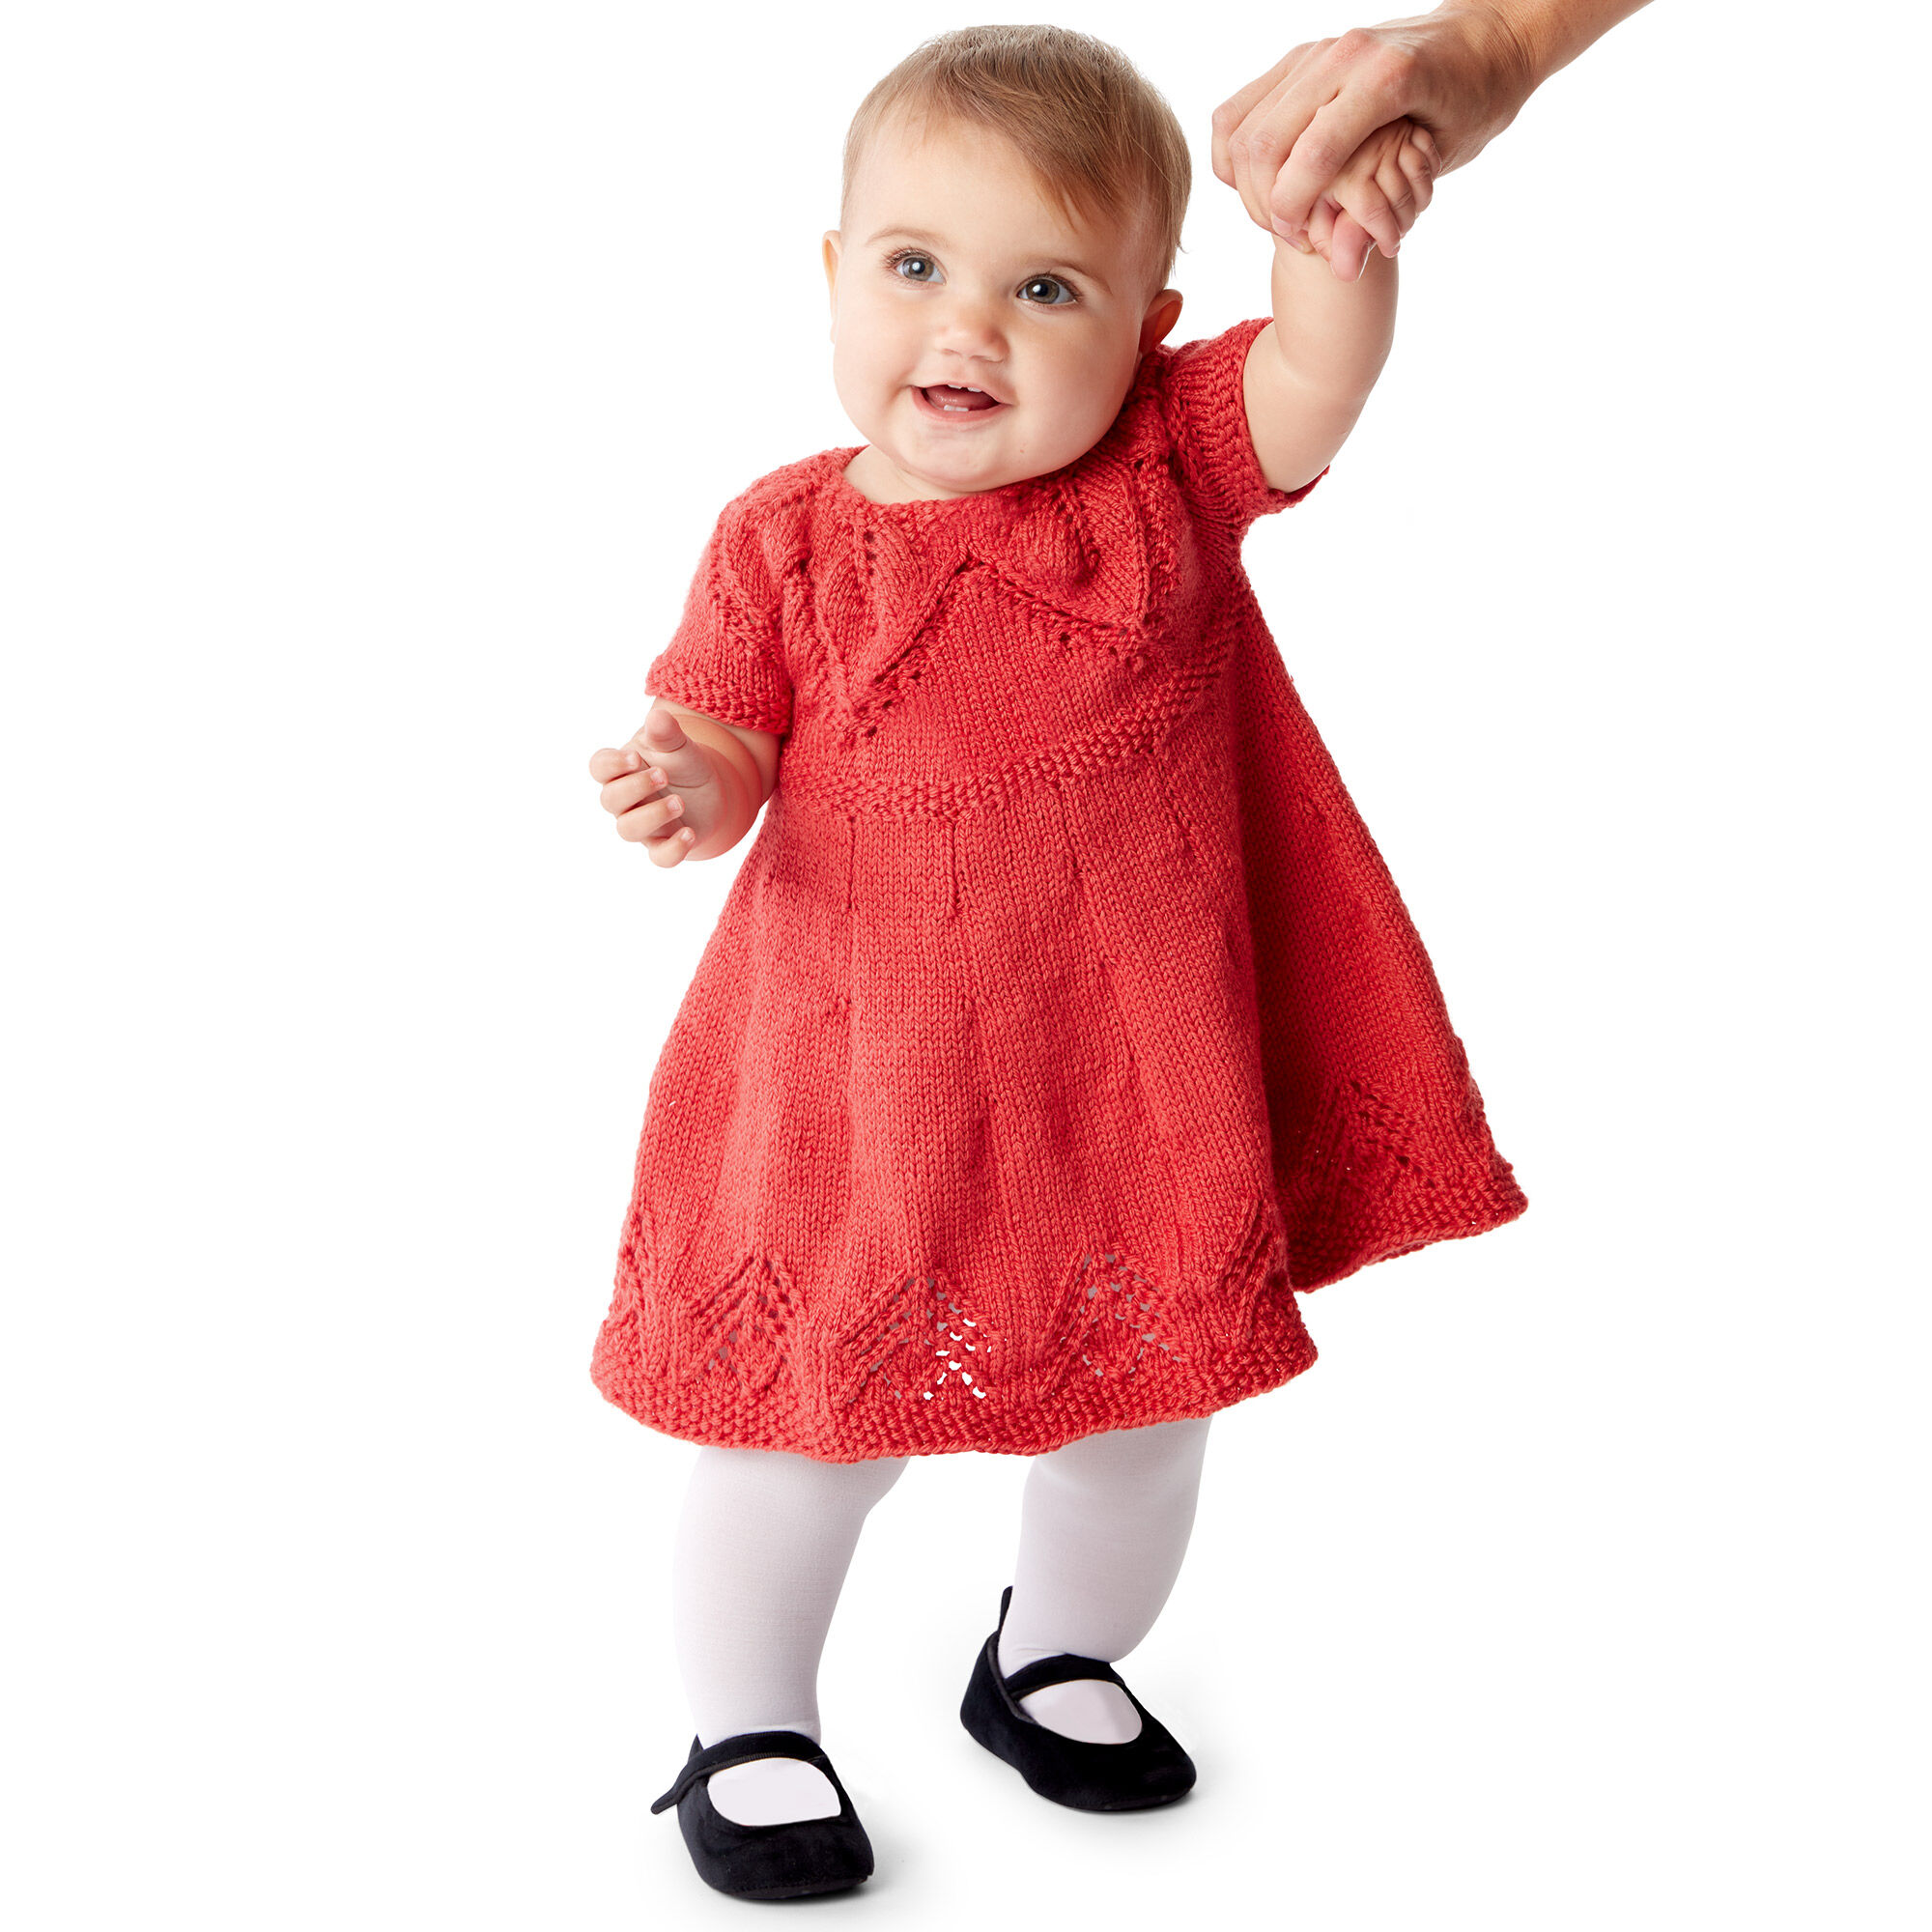 FAIRY LEAVES DRESS, 6 MOS, LITTLE RED WAGON - FREE Knitting Pattern